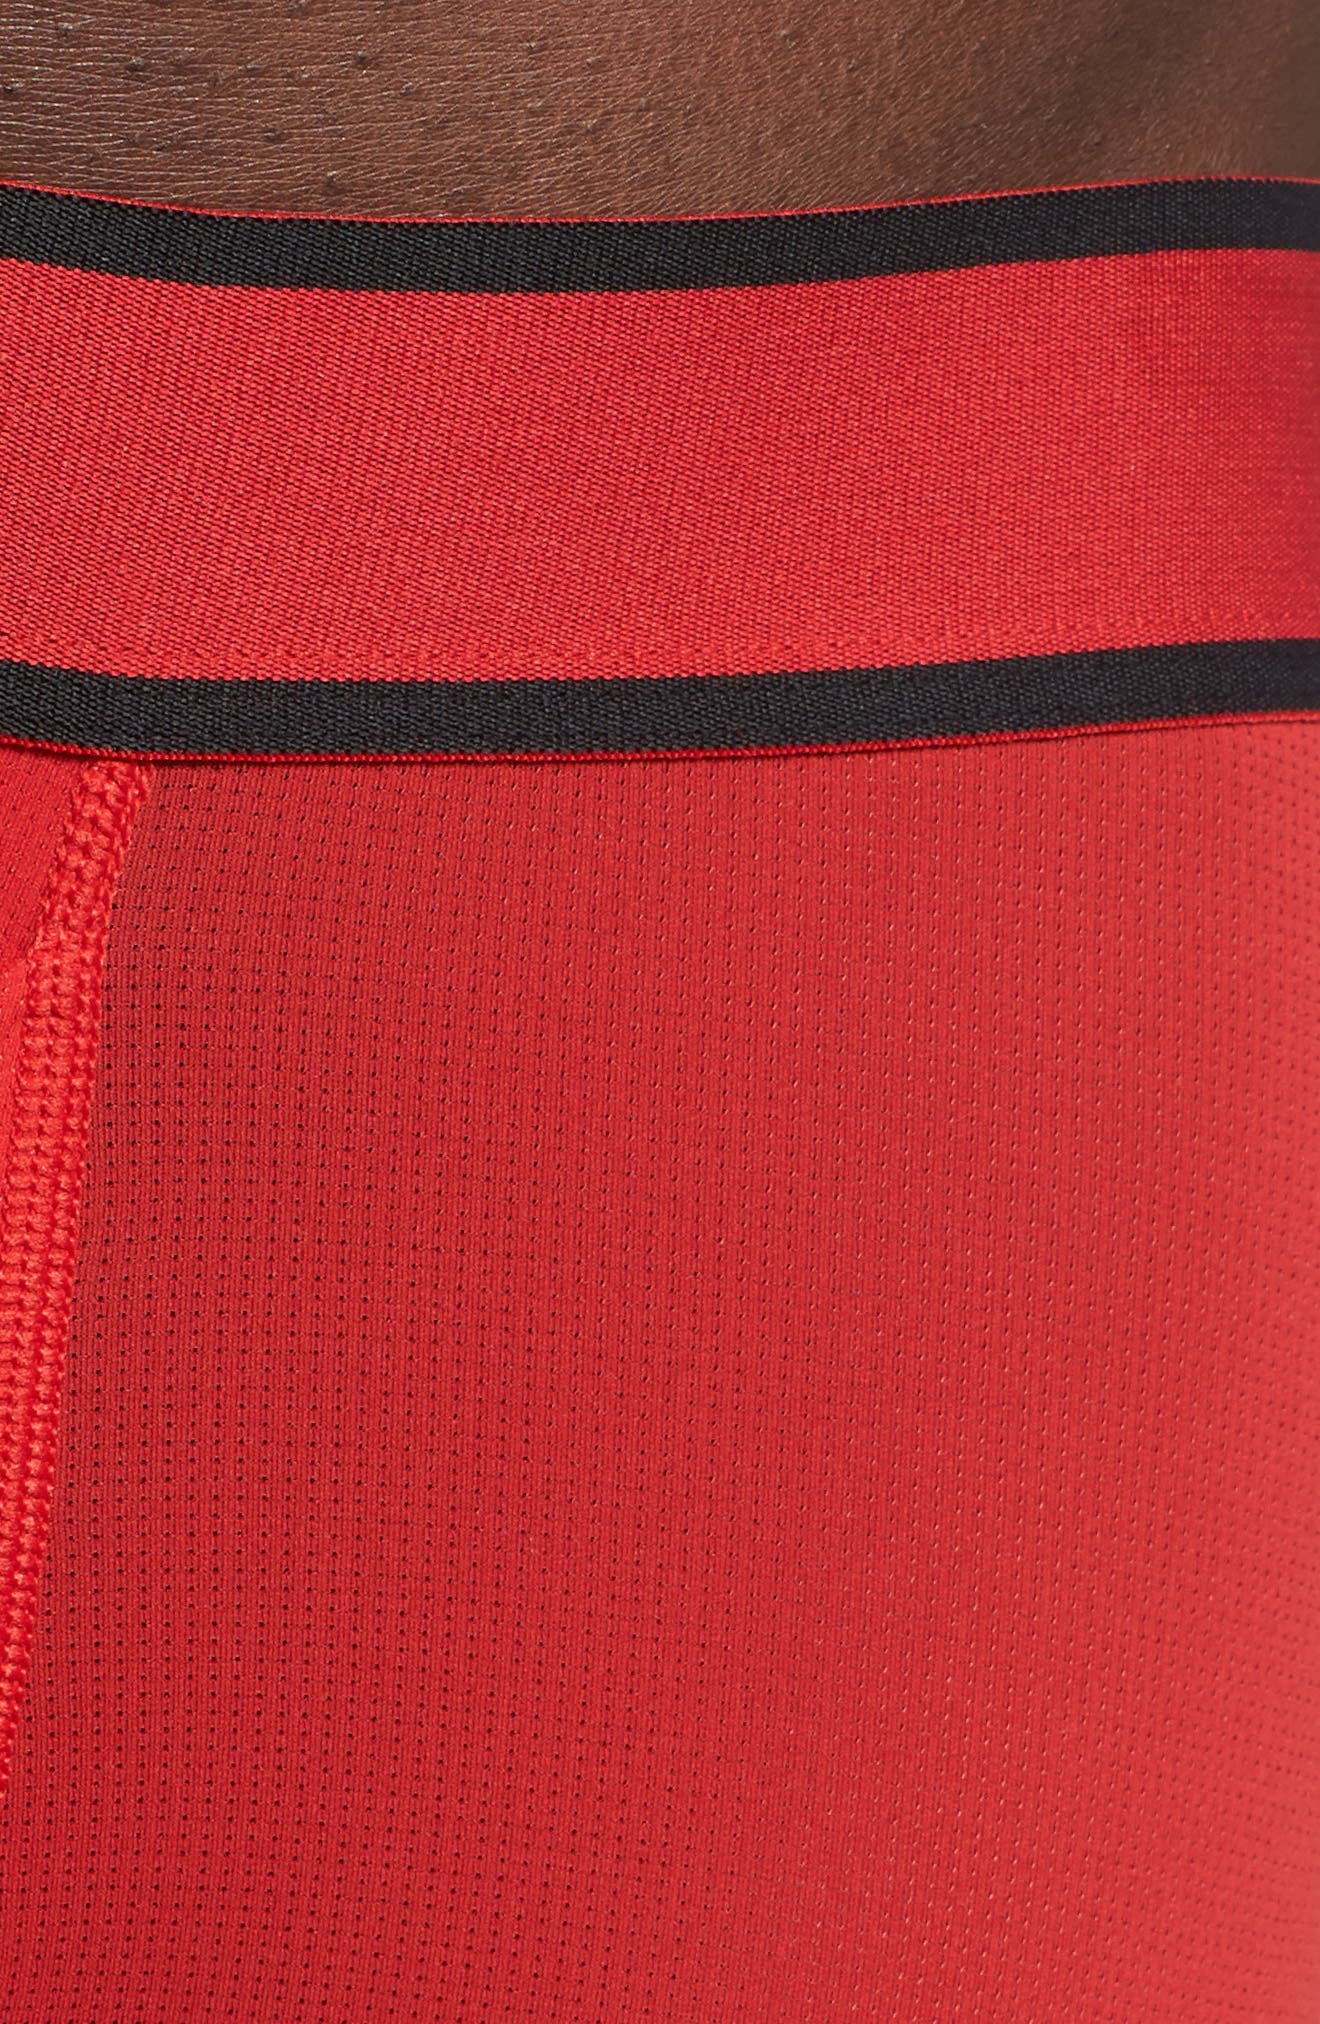 Air Boxer Briefs,                             Alternate thumbnail 4, color,                             Revolution Red